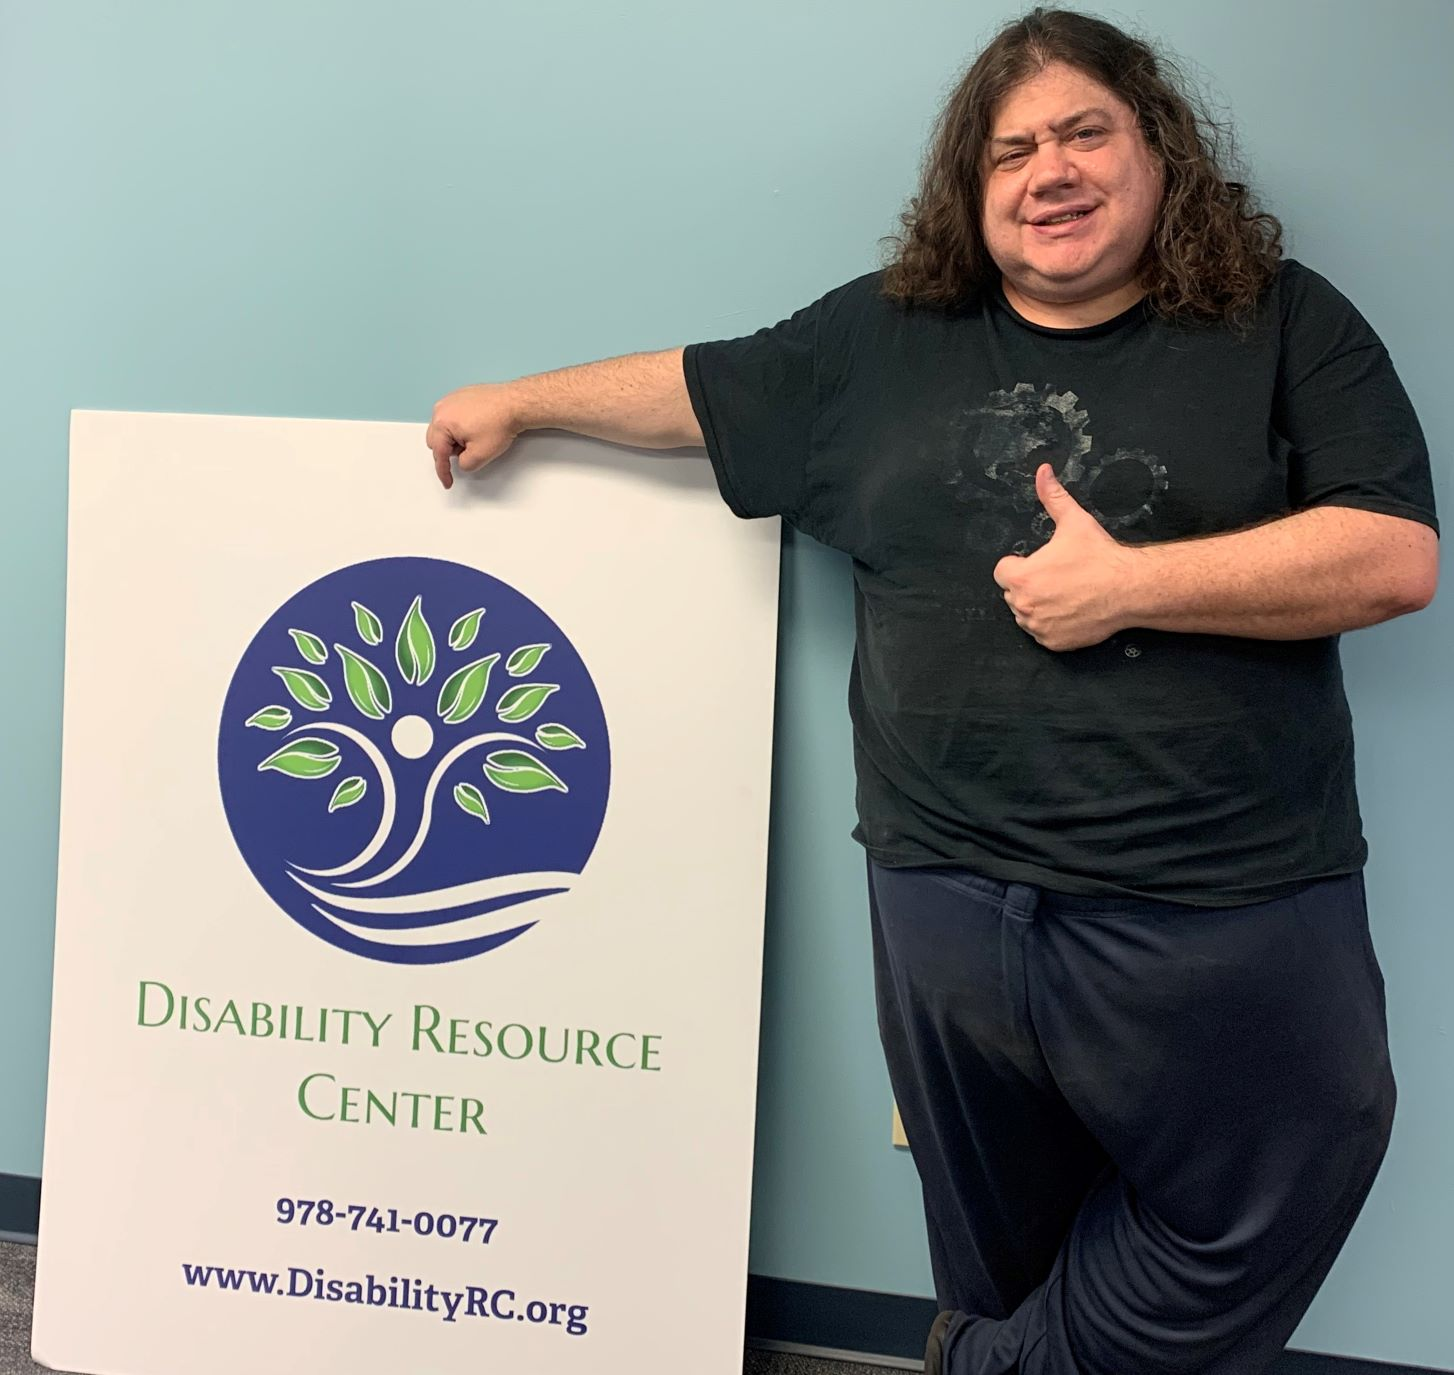 A white man with long curly brown hair leaning on a Disability Resource Center poster giving a thumbs up and a smile